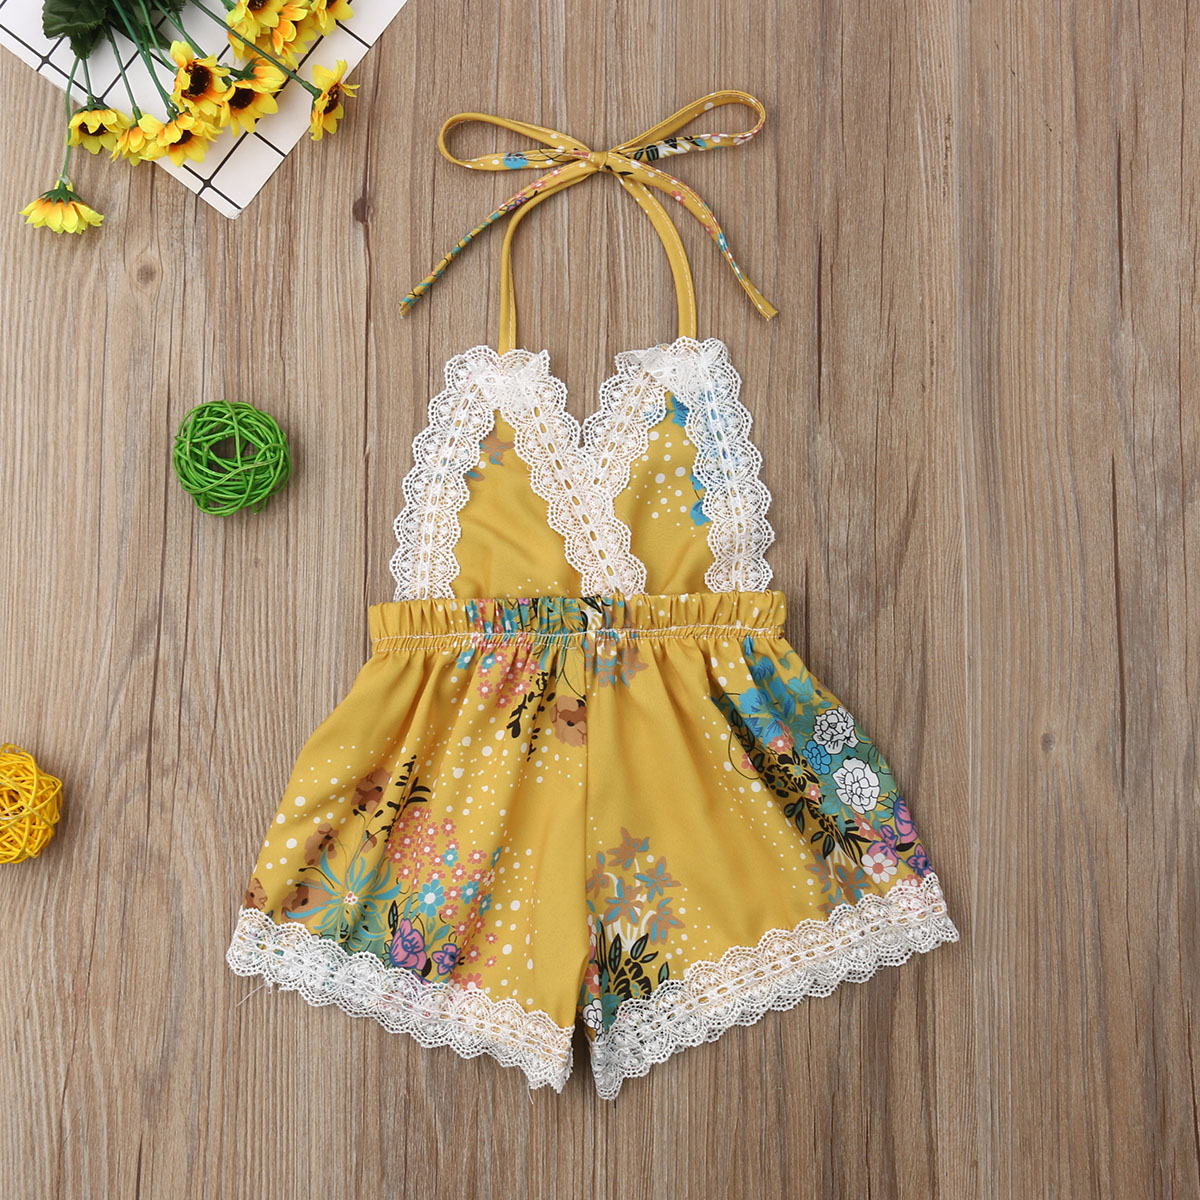 b67db5aac Details about USA Toddler Kid Baby Girls Sunflower Romper Bodysuit Jumpsuit  Outfit Clothes Set